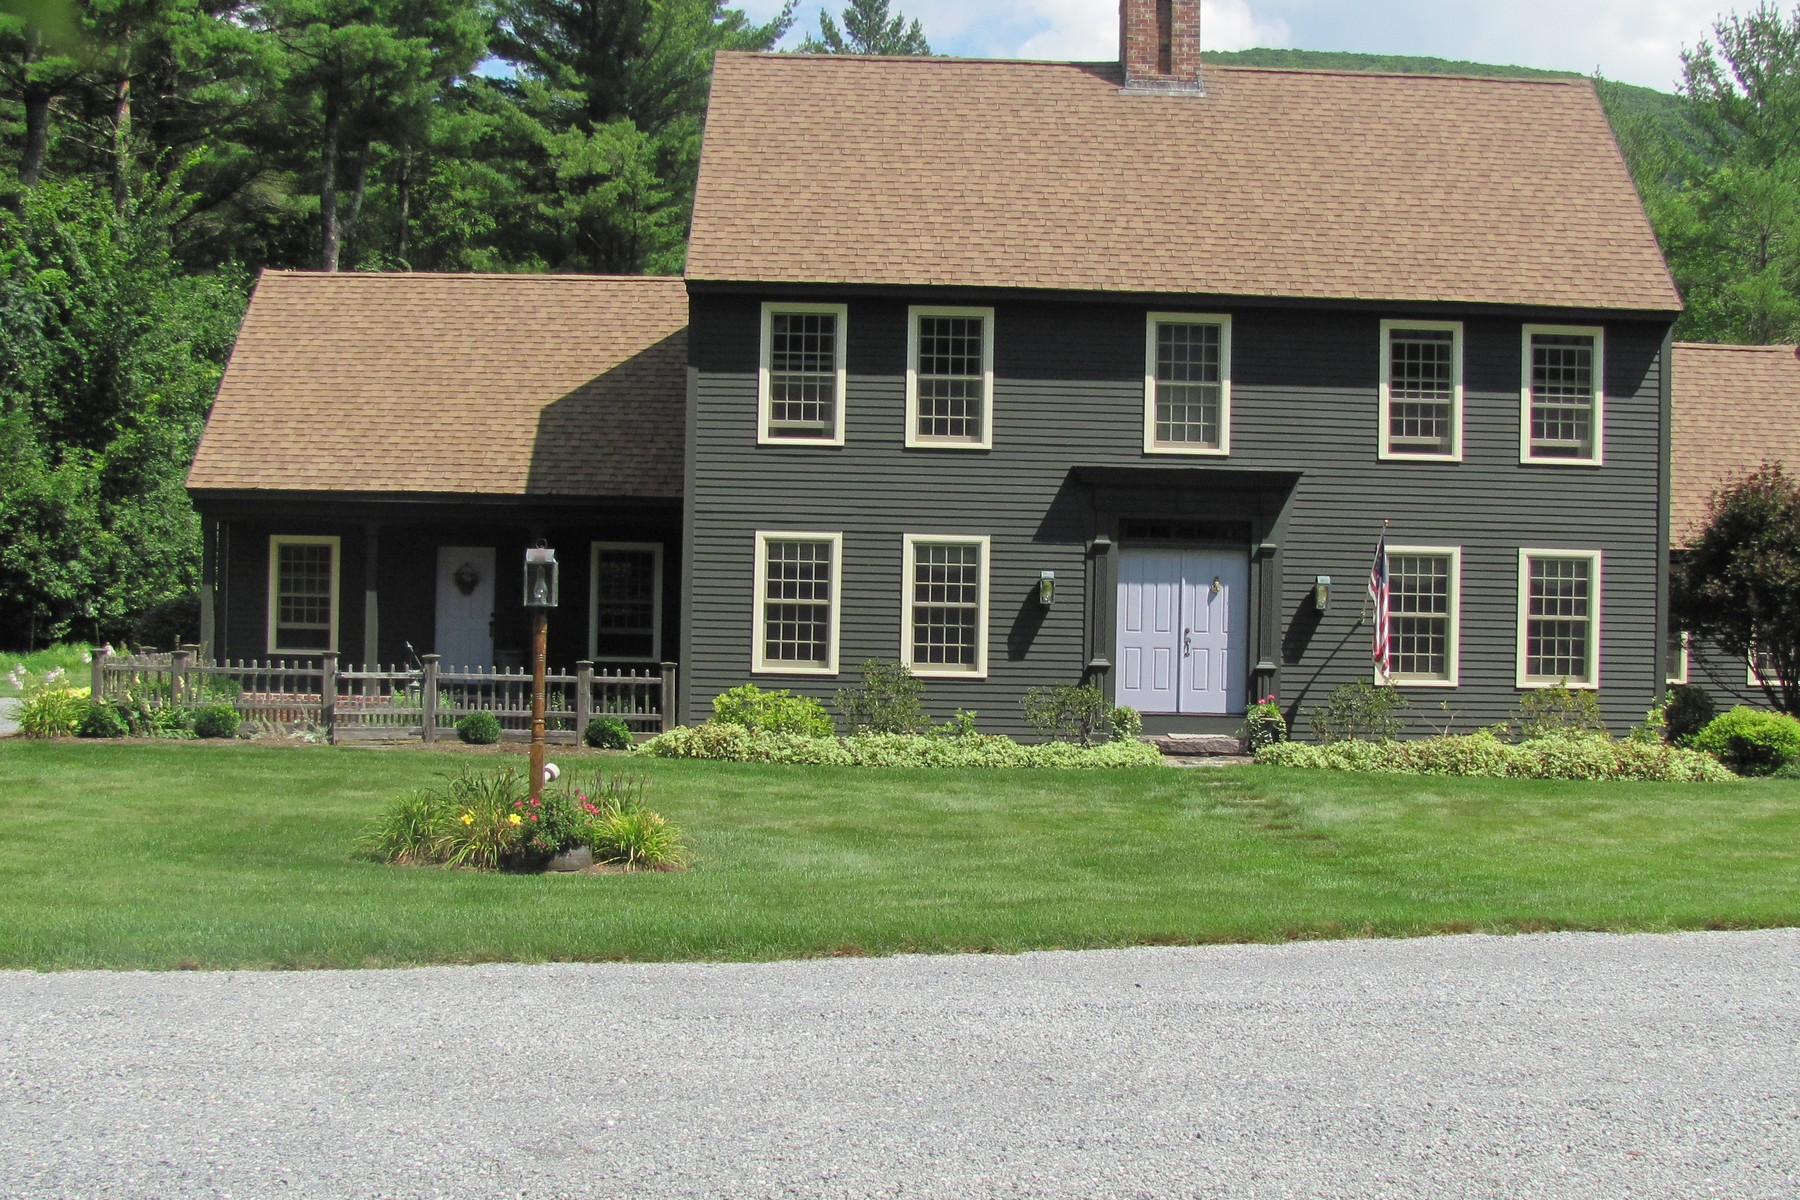 Single Family Home for Sale at Salt Box Reproduction Masterpiece 208 Black Rock Ln Dorset, Vermont, 05251 United States